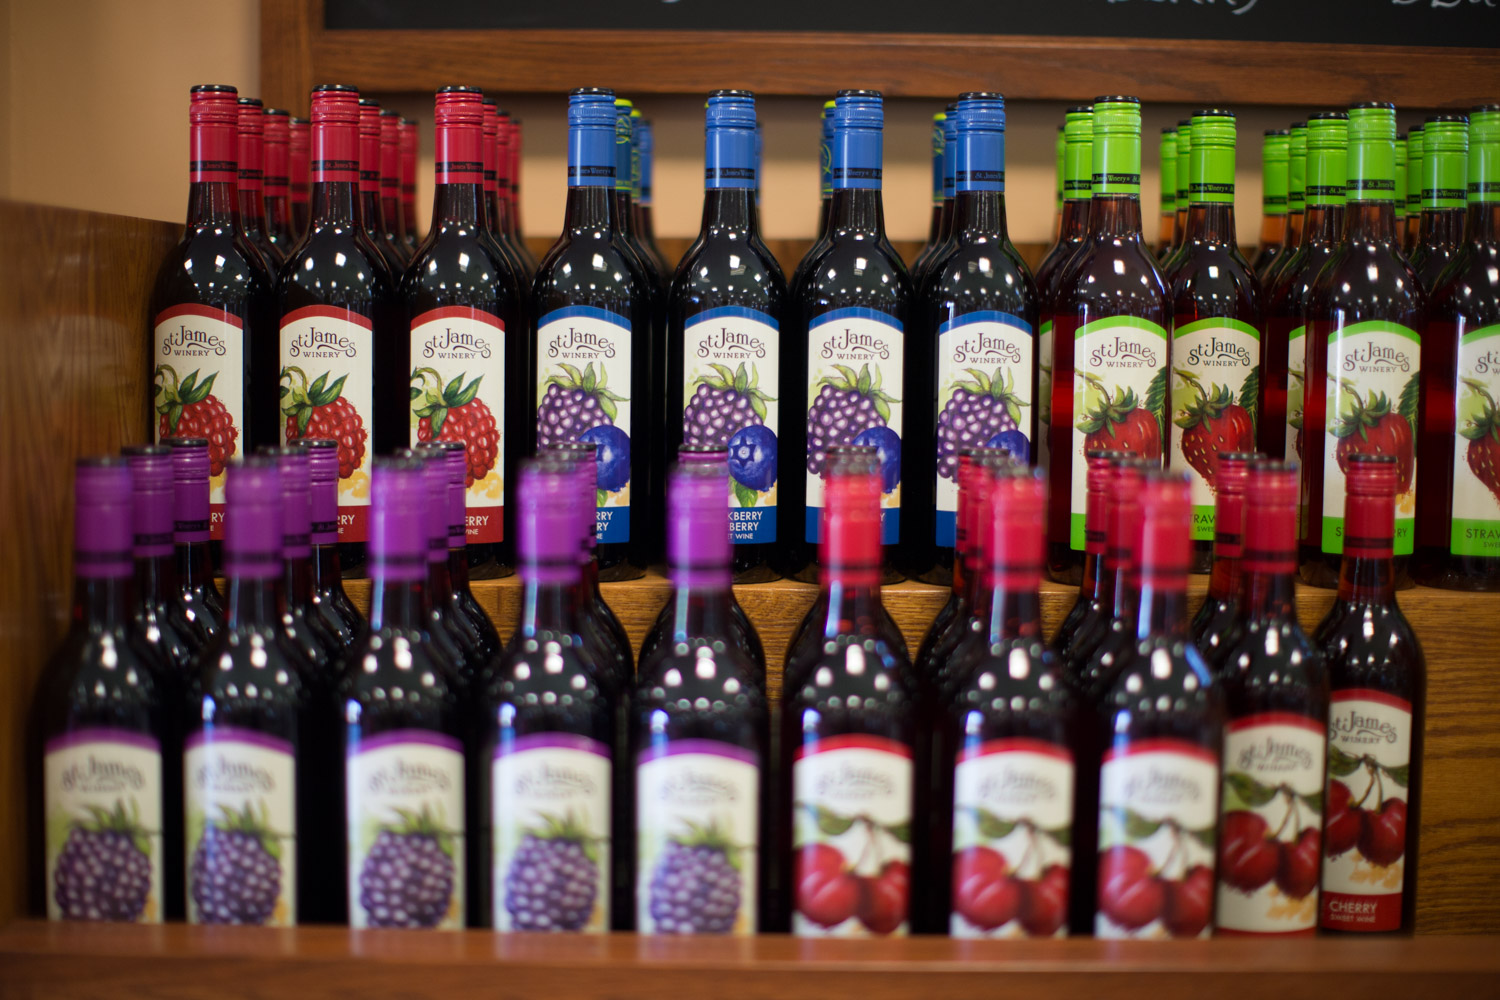 Where To Buy St James Winery Wine